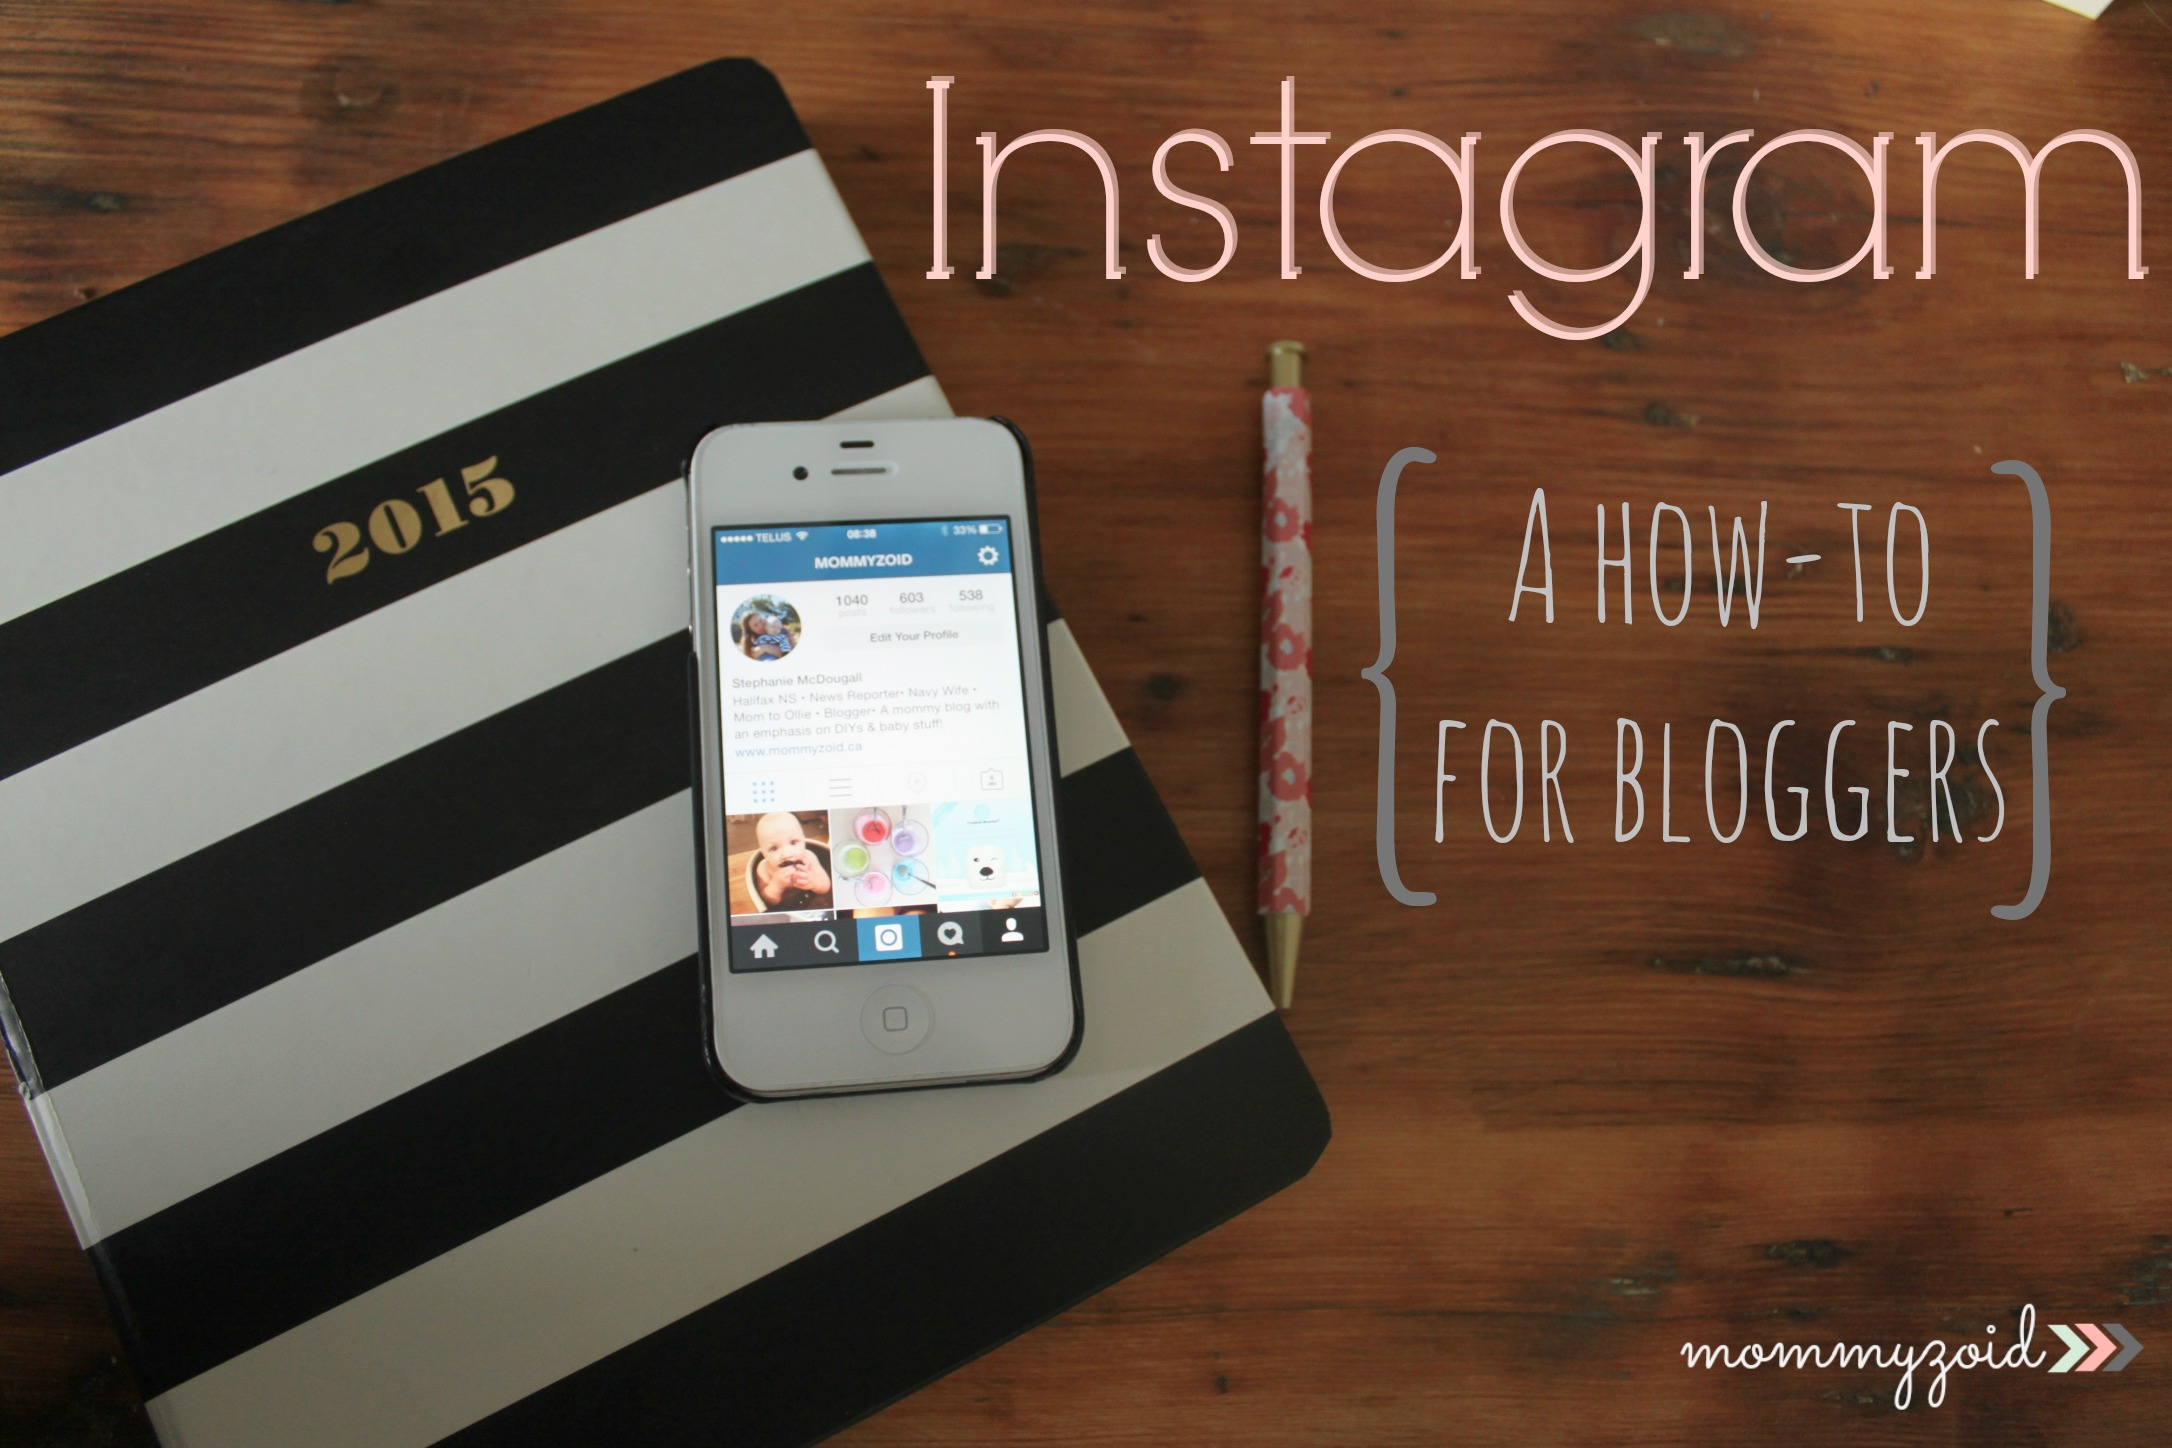 Instagram is a great social platform for bloggers. Now sure how it can fit in with your blog? Read this how-to!